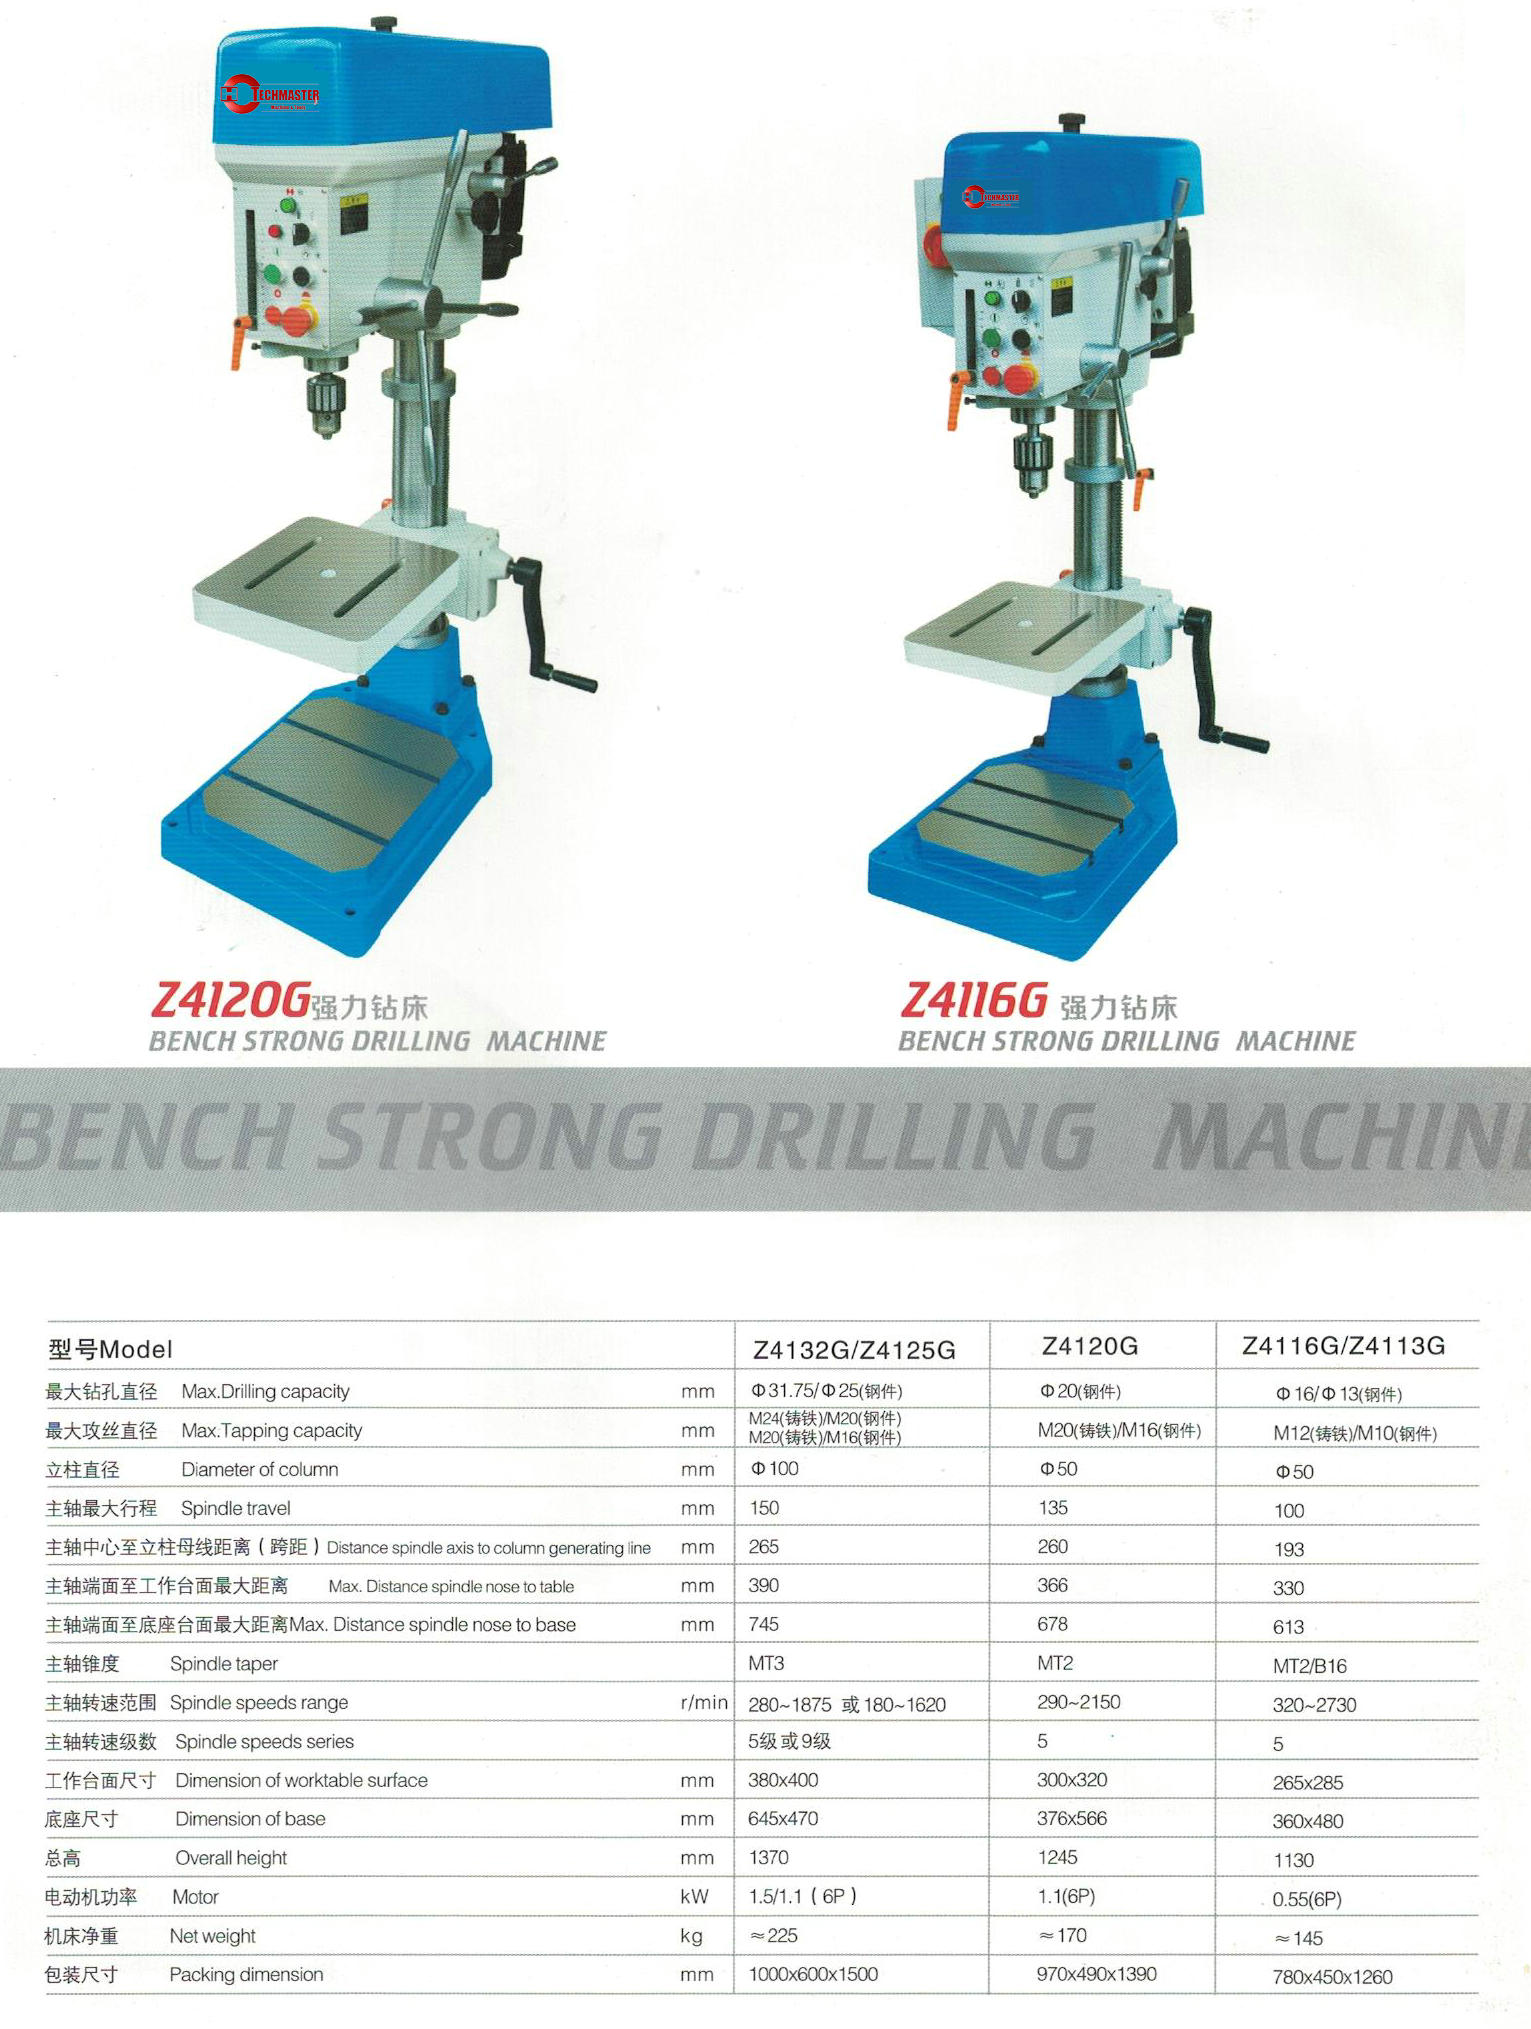 BENCH STRONG DRILLING MACHINE Z4116G